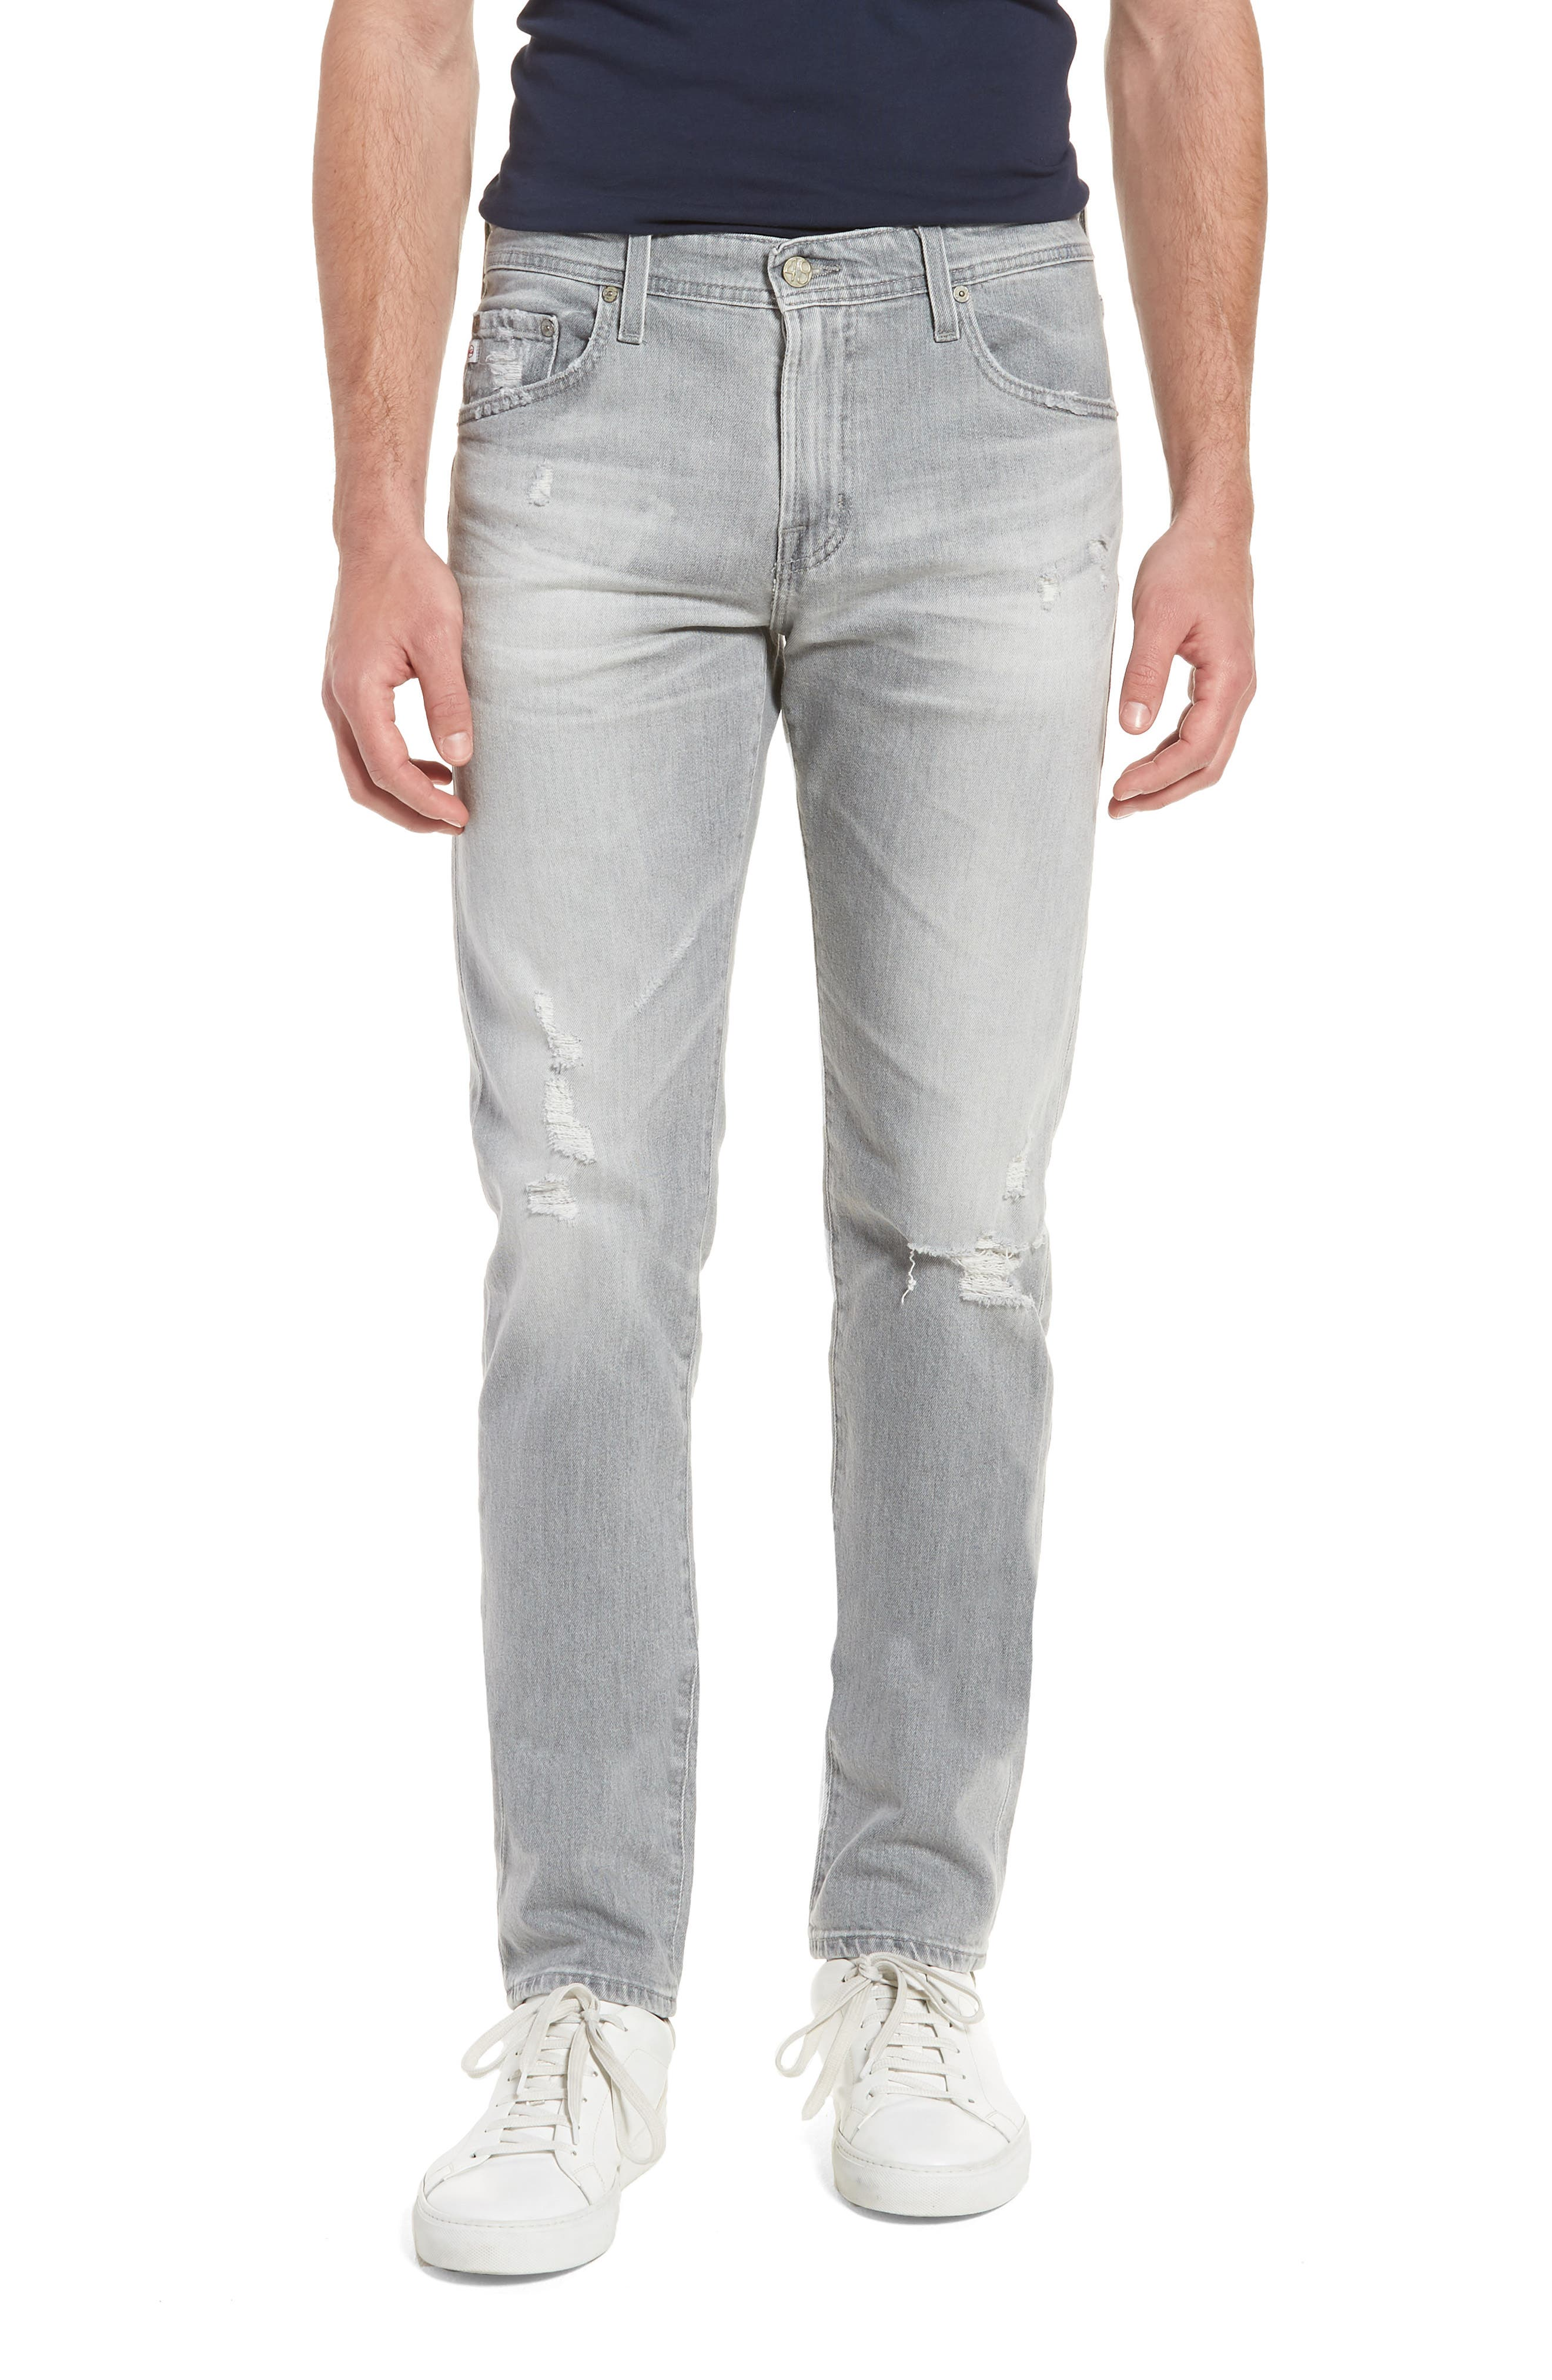 Tellis Slim Fit Jeans,                             Main thumbnail 1, color,                             21 YEARS SKETCH